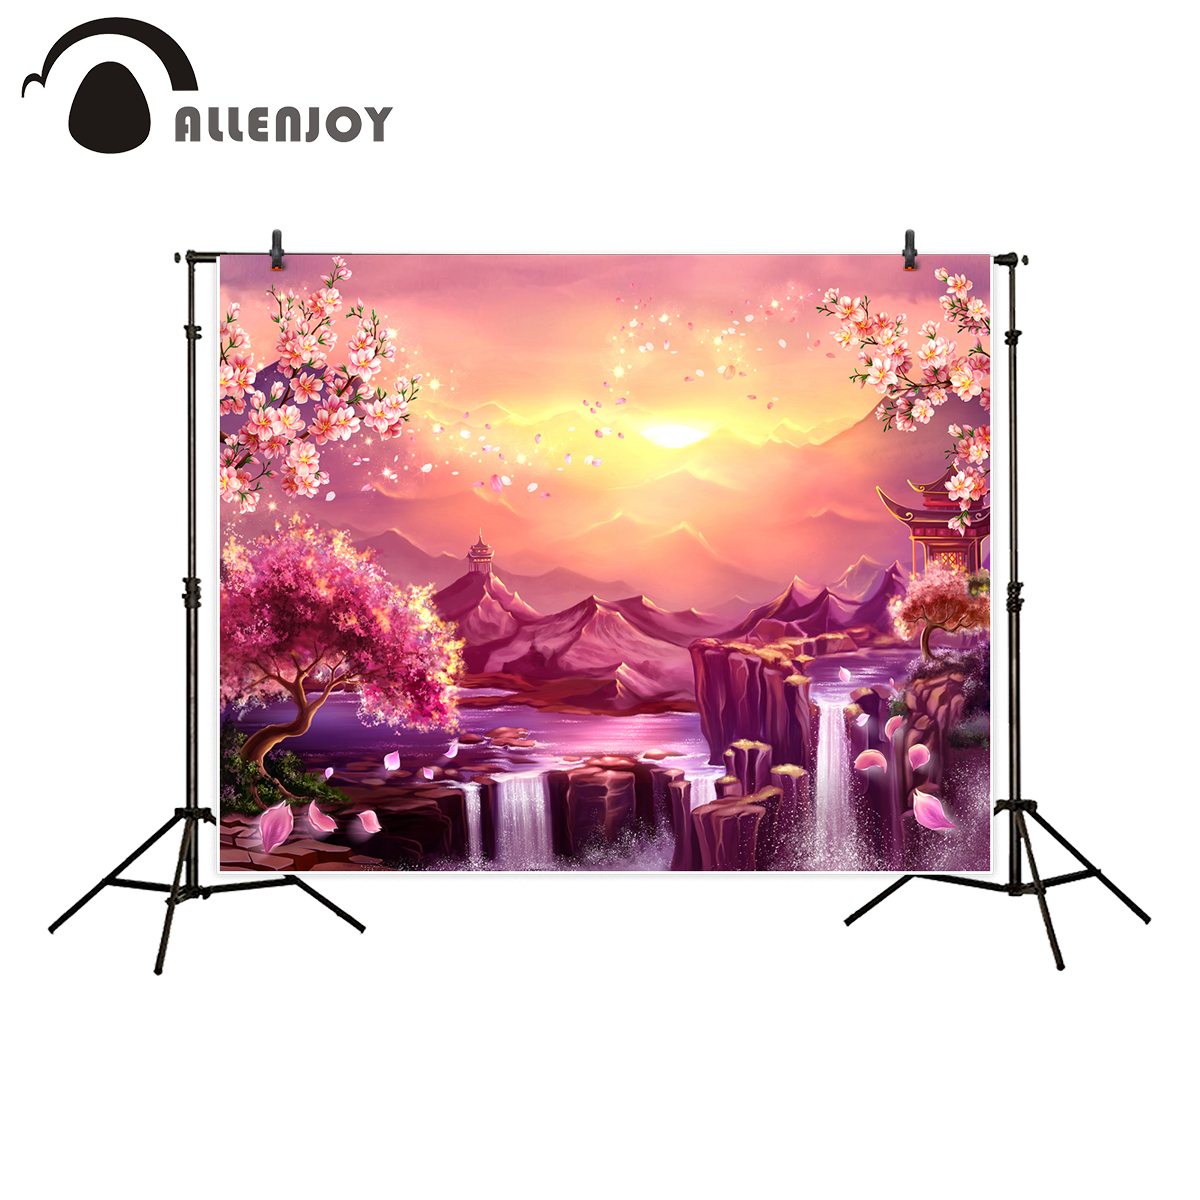 Allenjoy photography backdrop nature ancient japan flower tree sakura blossom background photo studio photocall allenjoy photography backdrop library books student child newborn photo studio photocall background original design